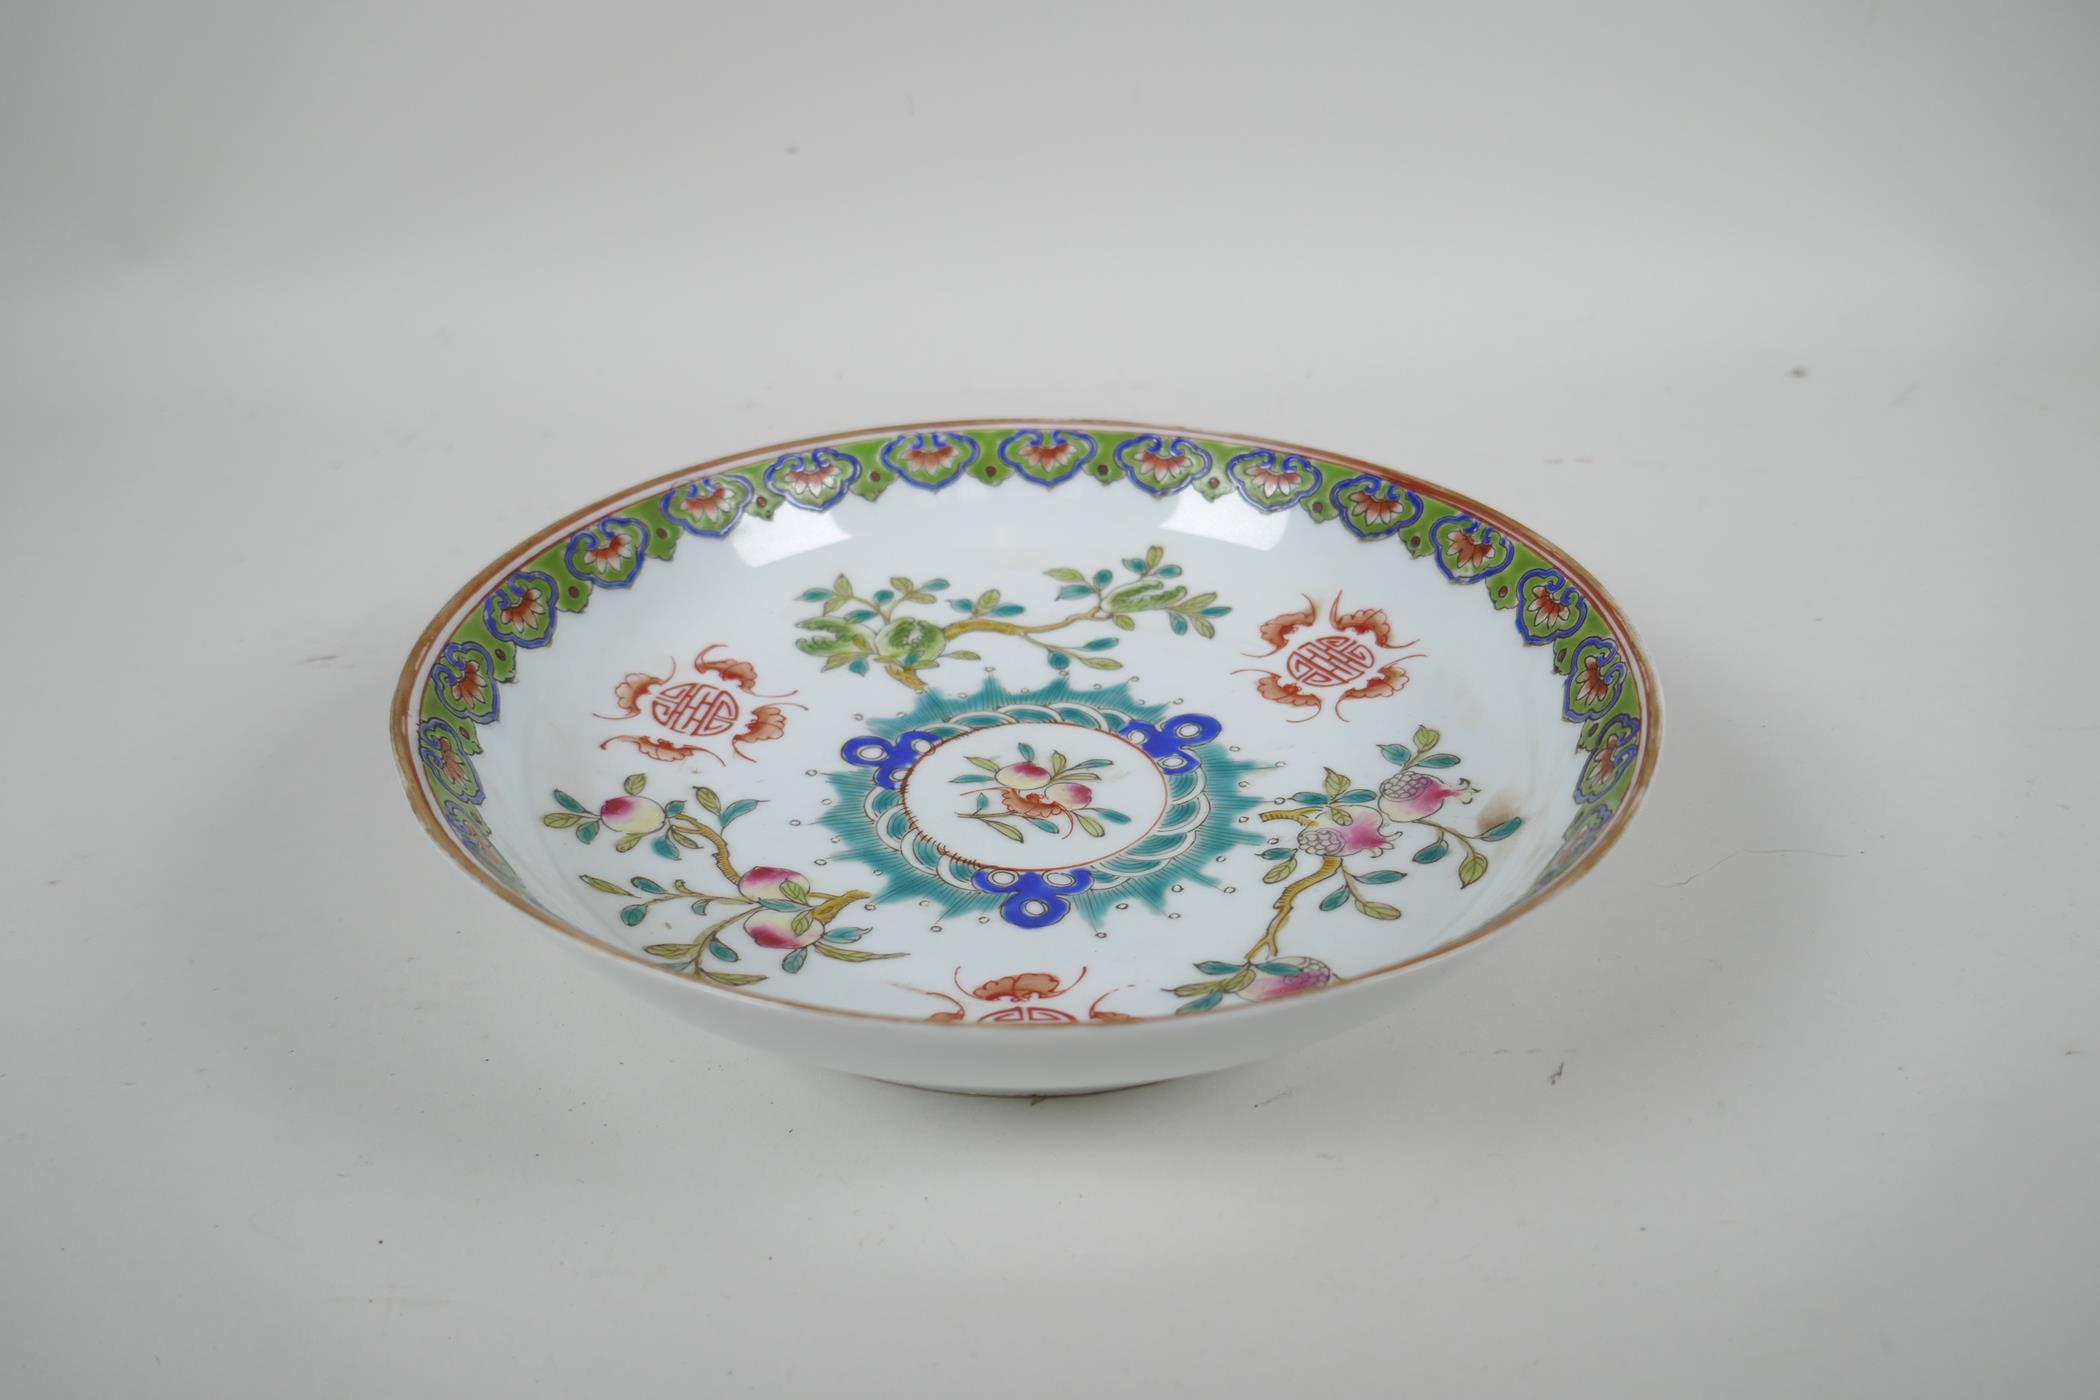 An early C20th Chinese famille verte porcelain dish decorated with bats, auspicious symbols and - Image 2 of 3